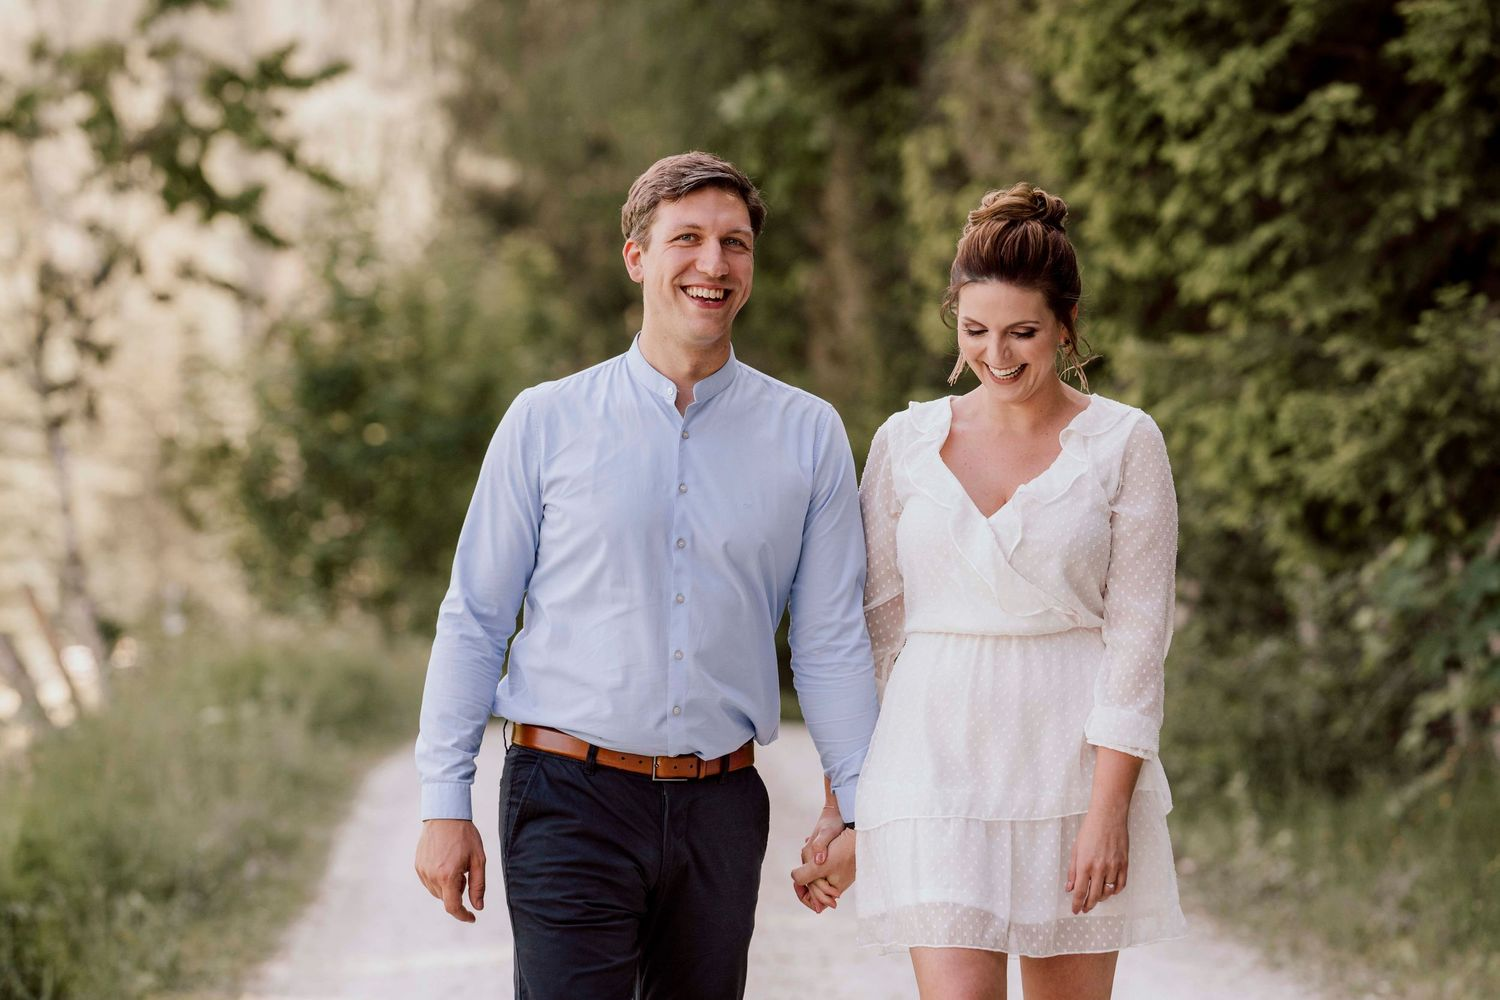 romantic couple walking on a path along a forest looking and smiling